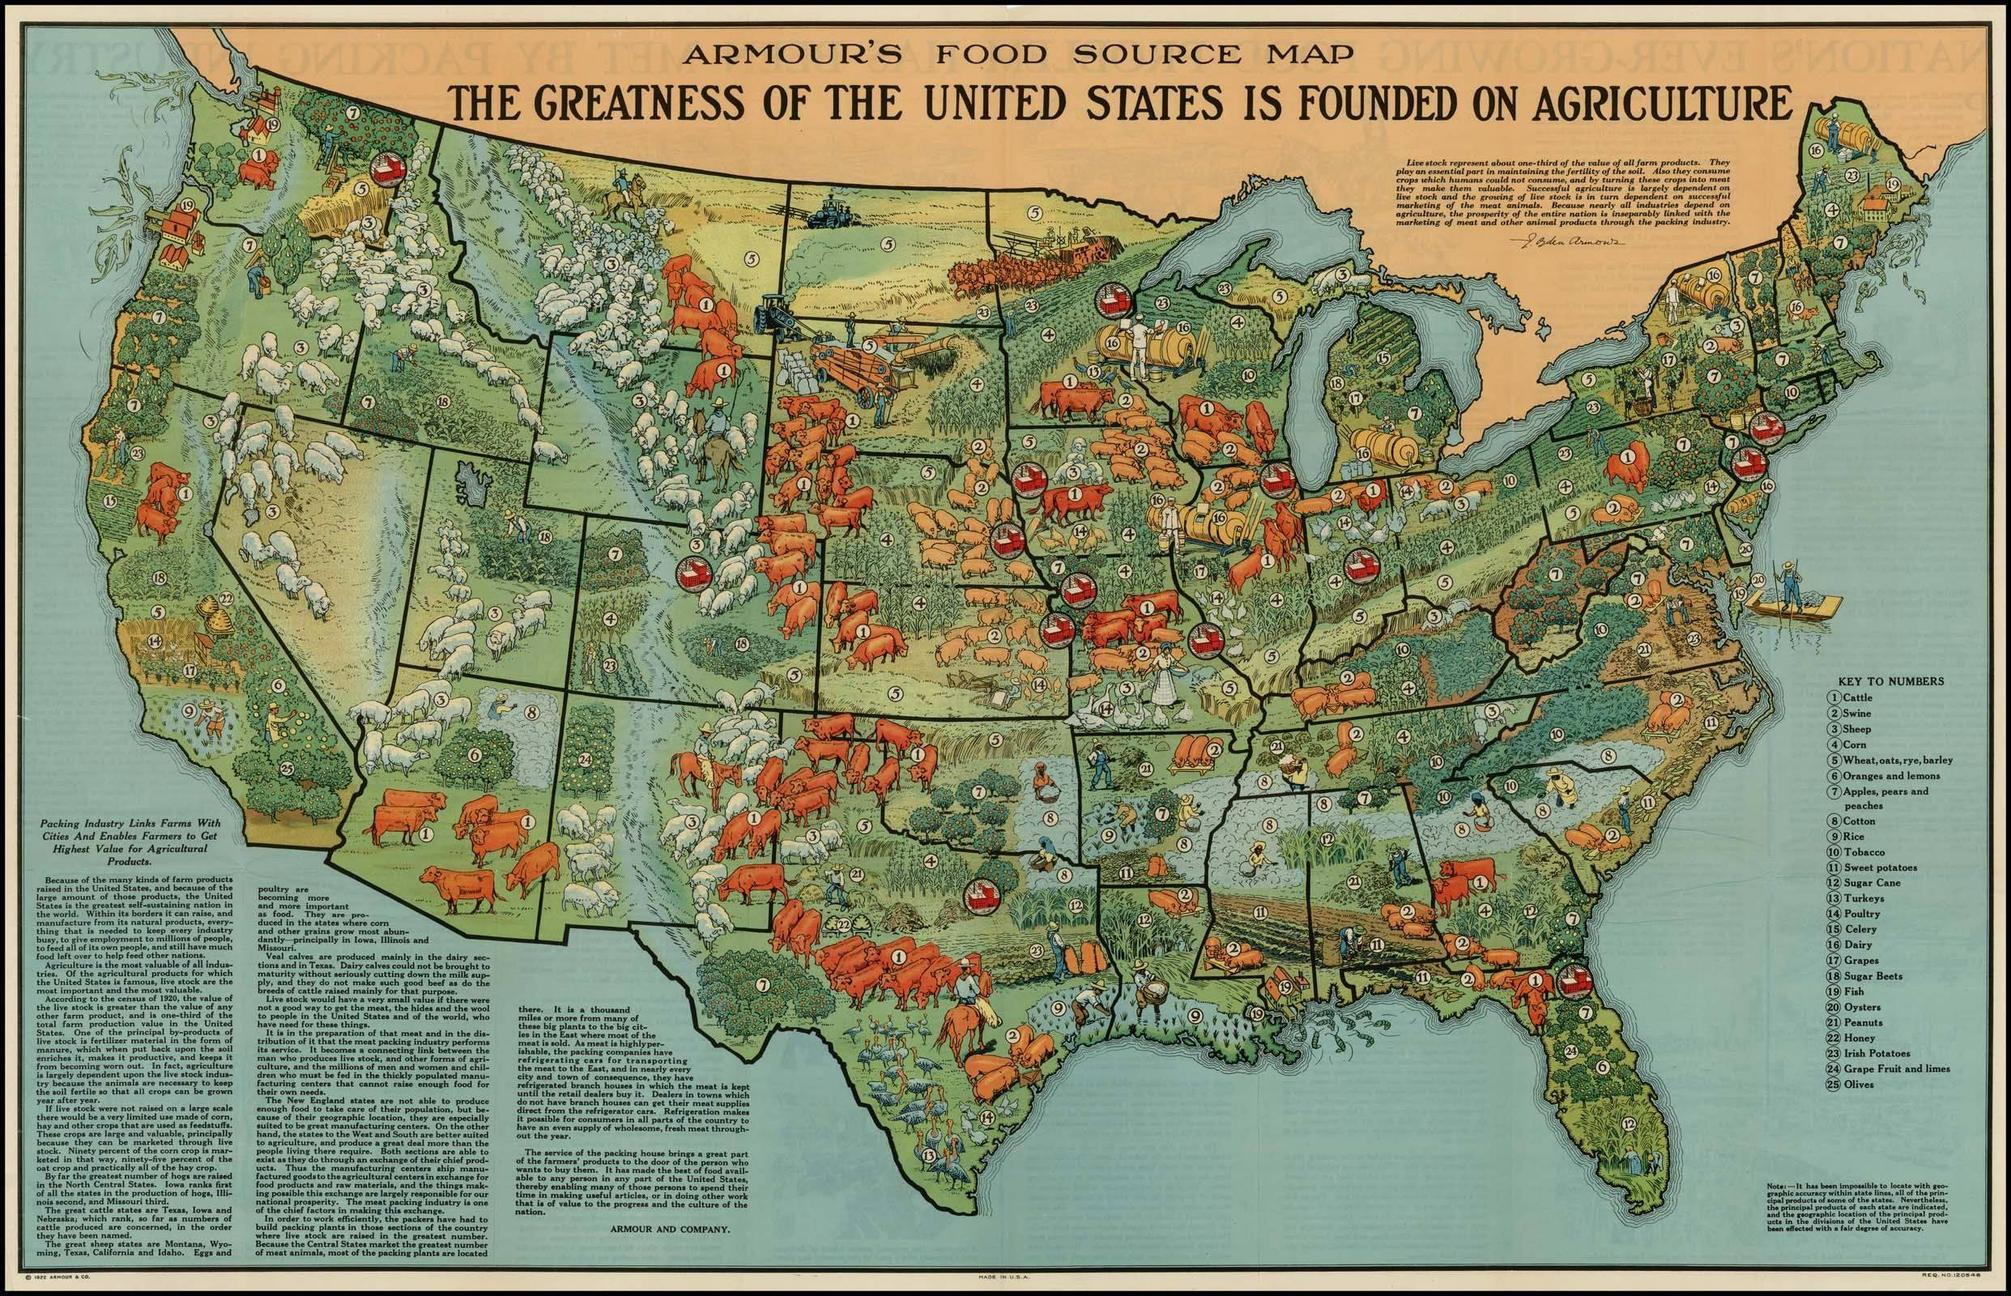 United State Of America Map.40 Maps That Explain Food In America Vox Com